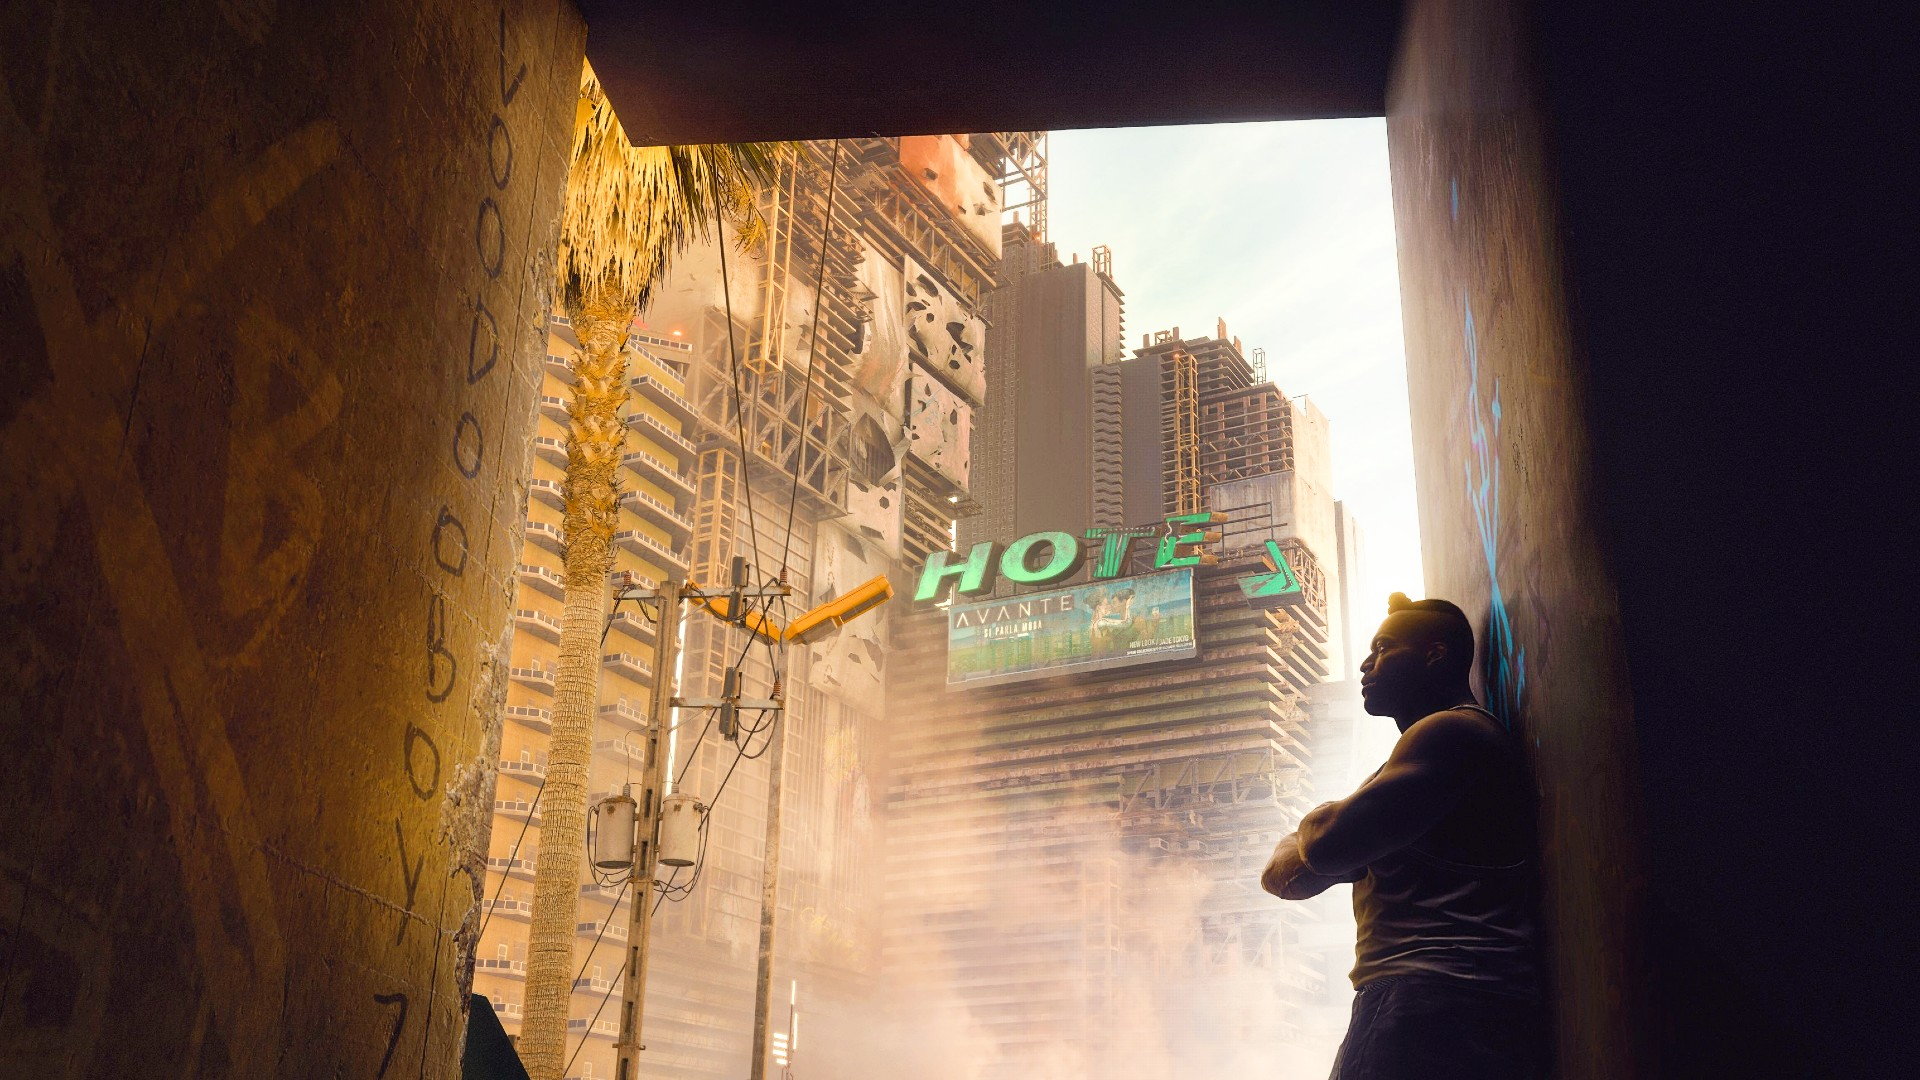 Cyberpunk 2077 is getting wall-running after all, thanks to one modder